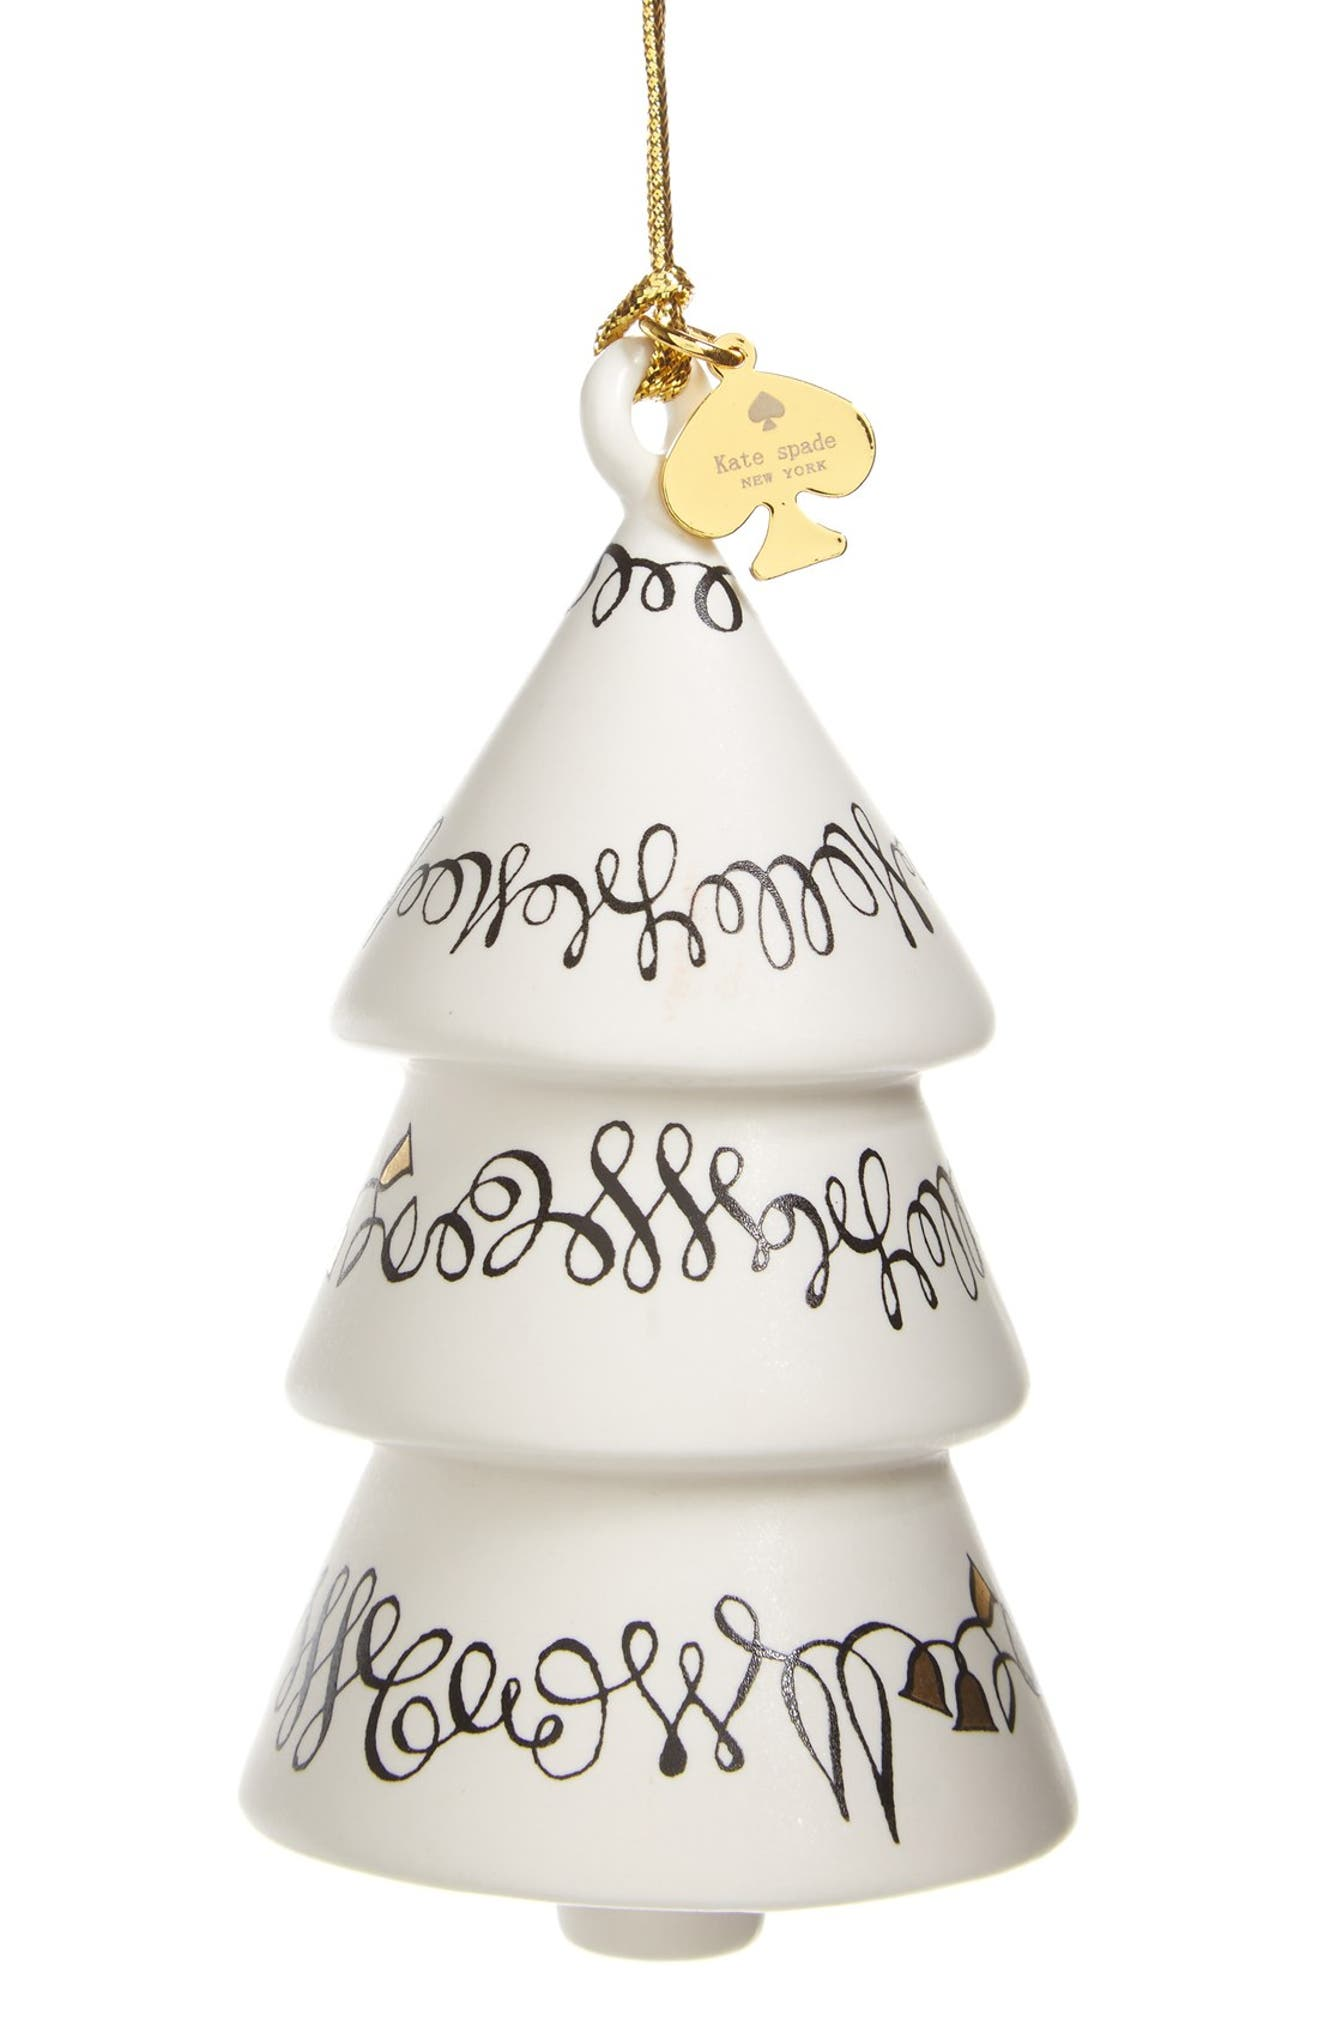 kate spade new york \'woodland park\' porcelain tree ornament | Nordstrom